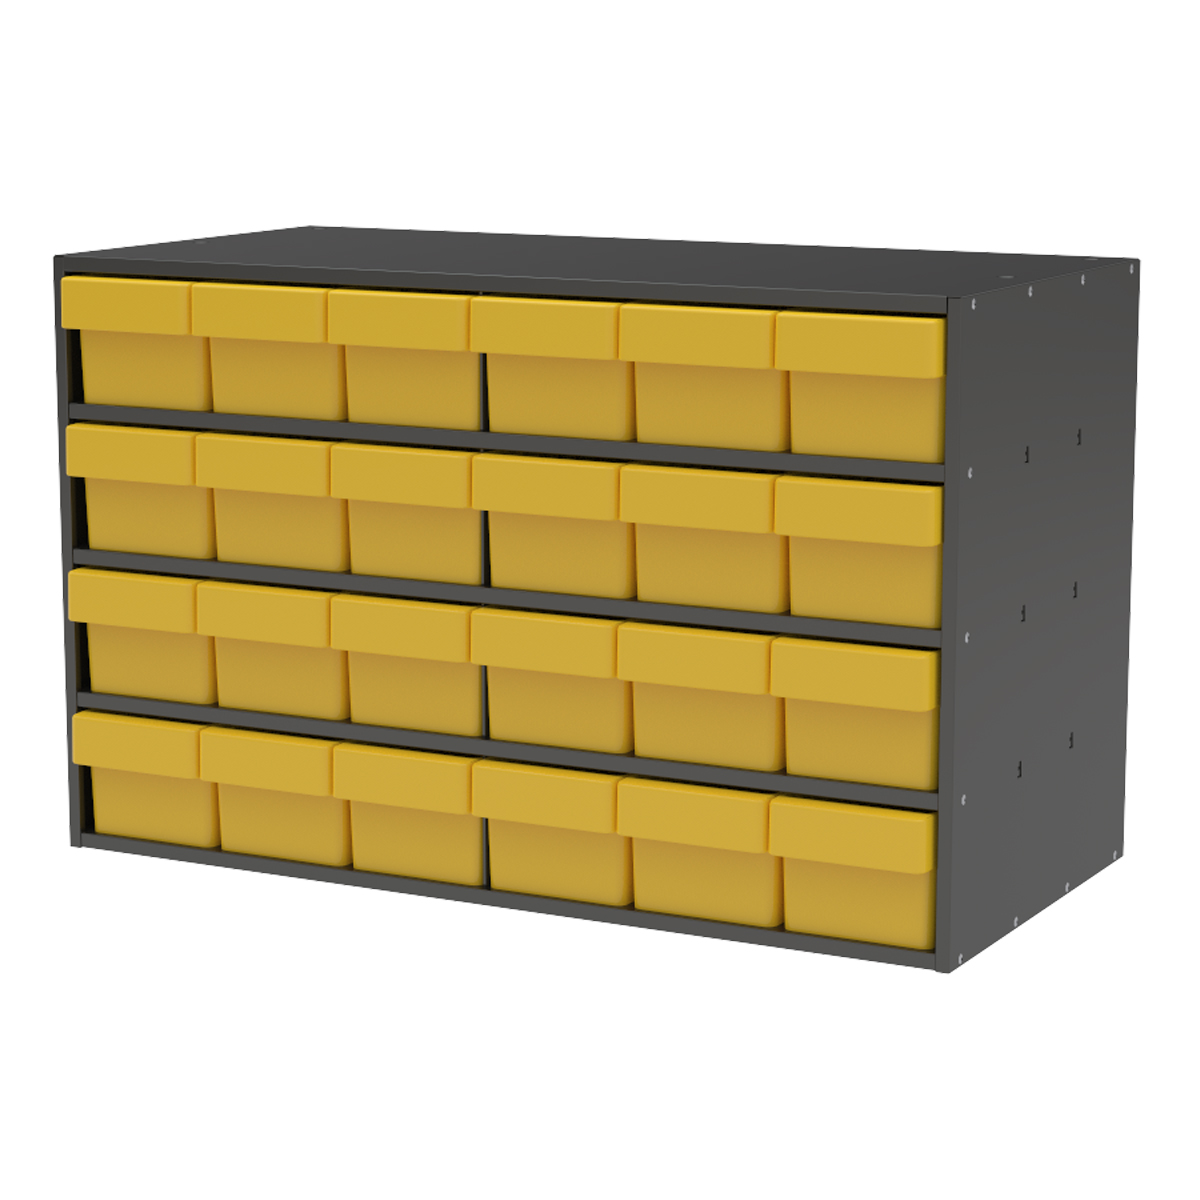 Item DISCONTINUED by Manufacturer.  Stackable Cabinet, 35x17x22, 24 Drawers, Gray/Yellow (AD3517C68YEL).  This item sold in carton quantities of 1.